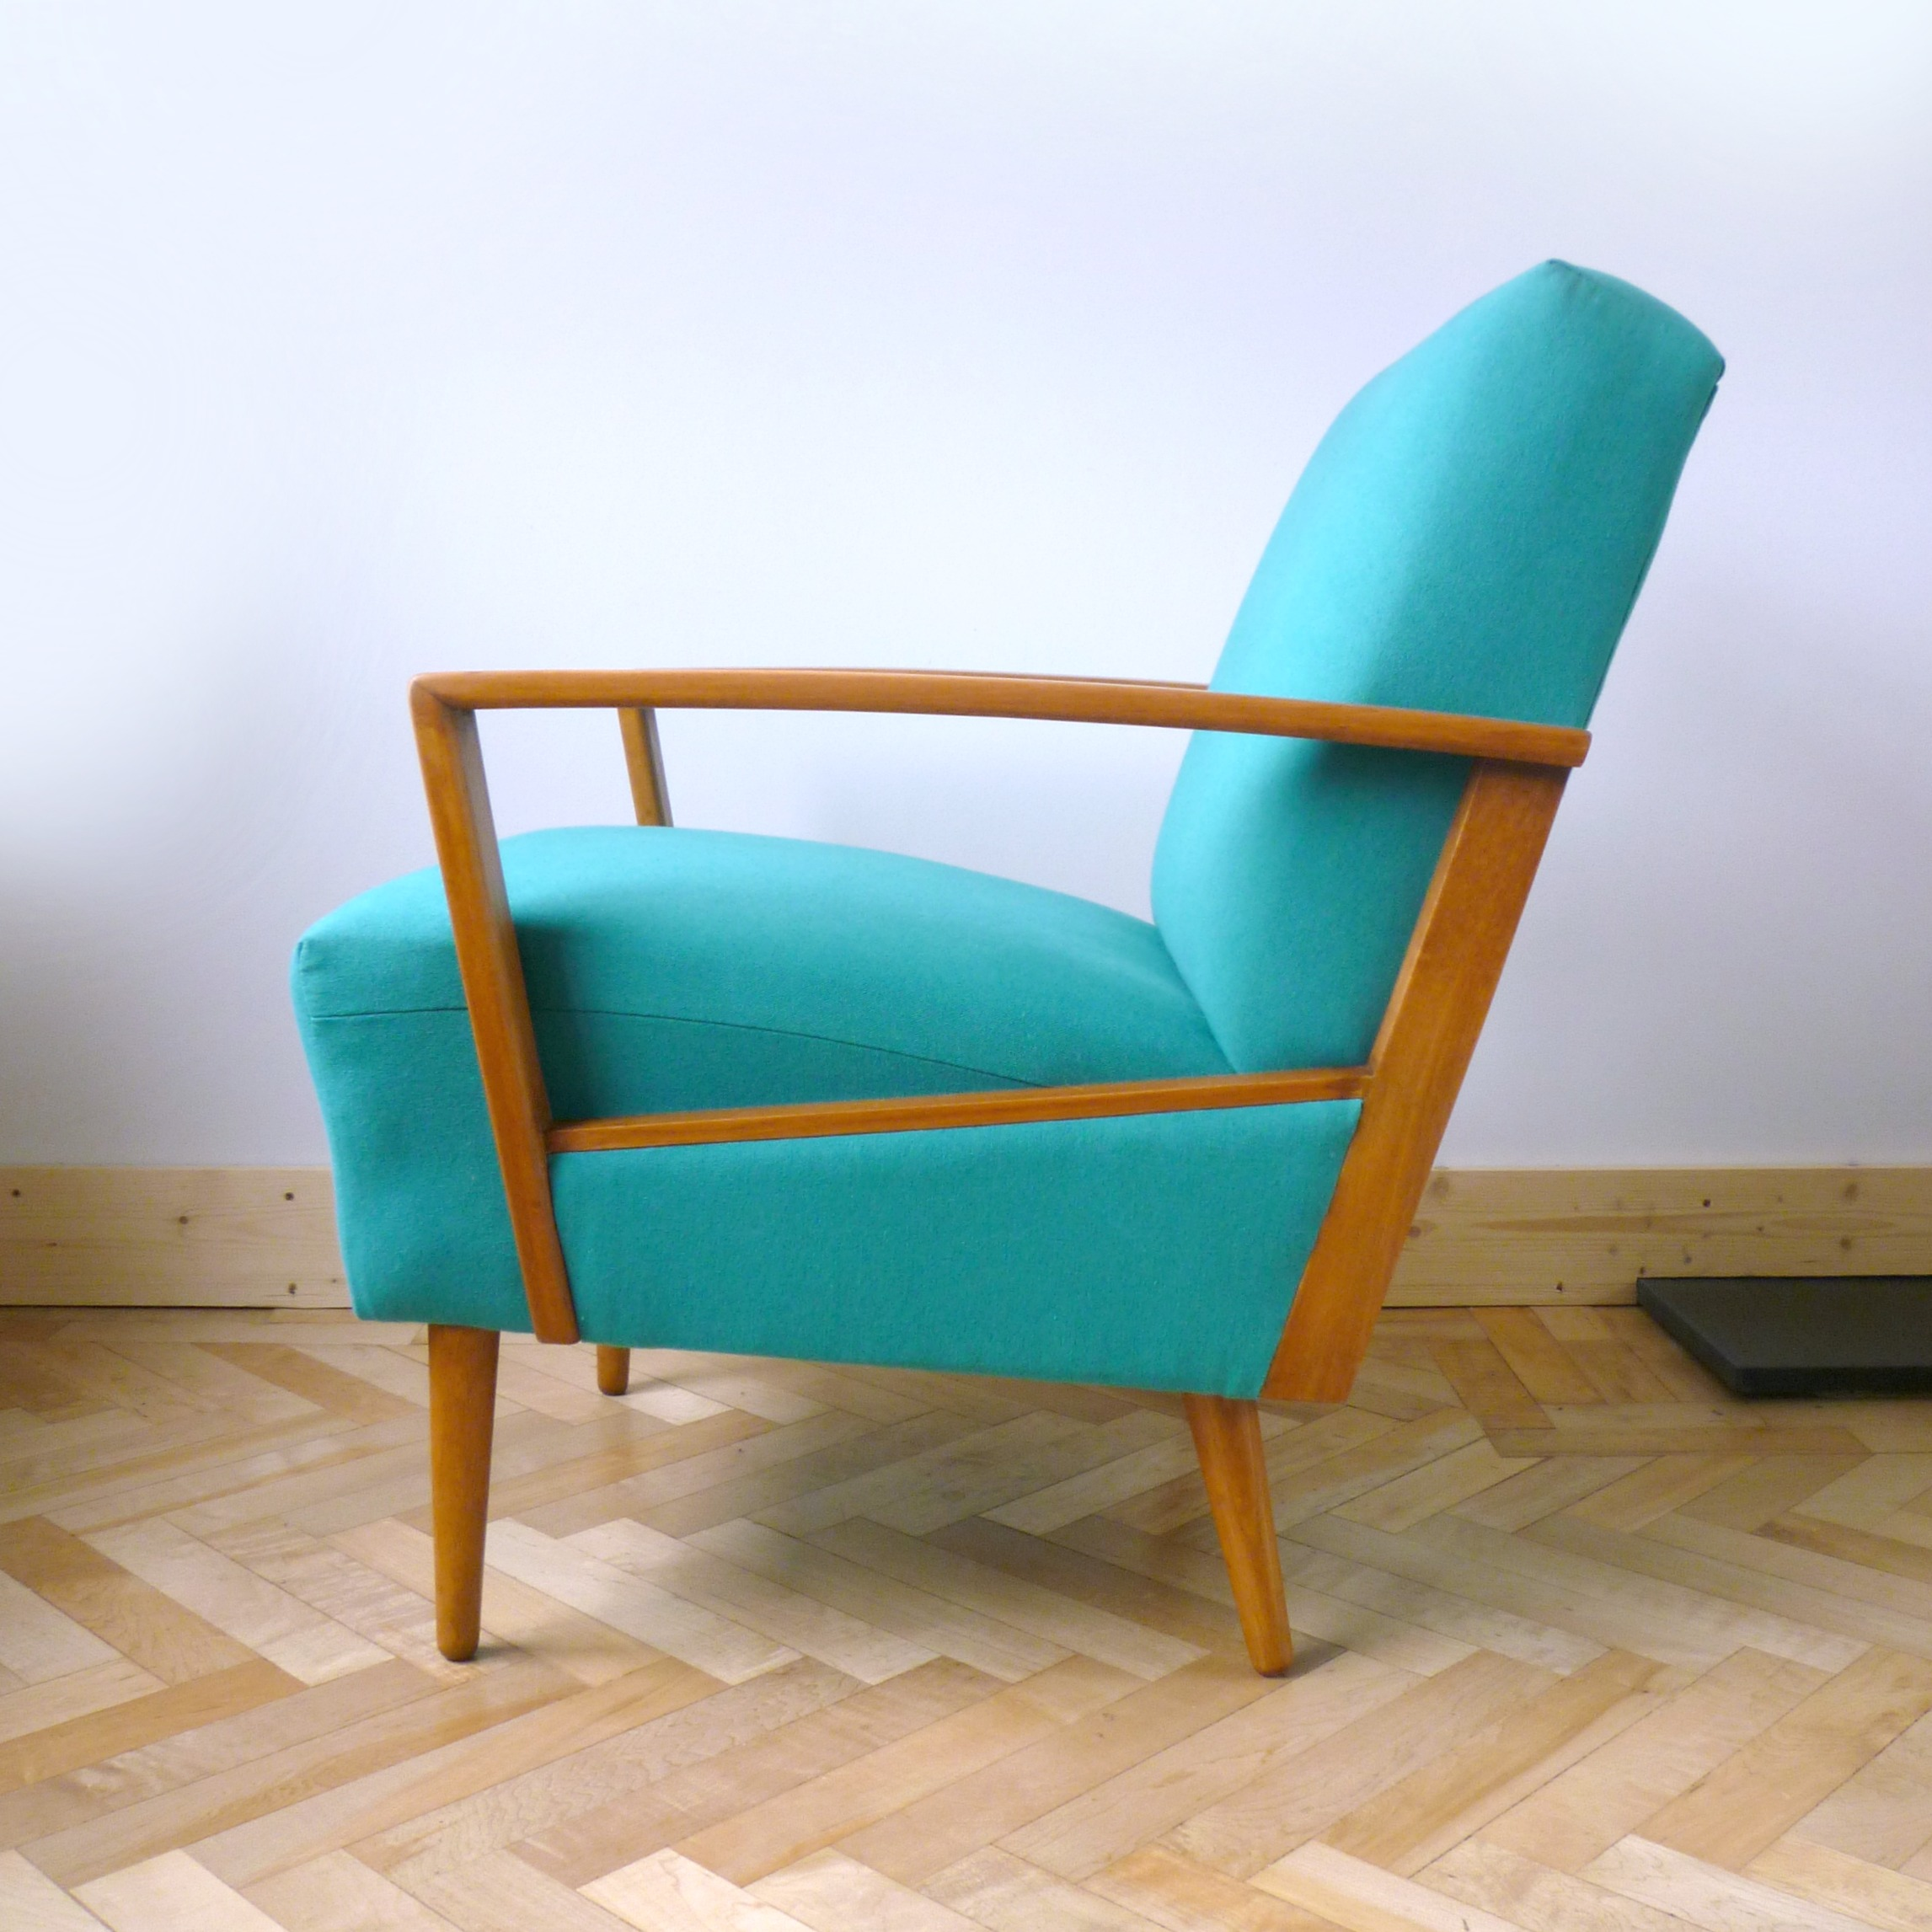 Teal retro danish armchair from drab to dreamy florrie bill for G plan dining room furniture sale